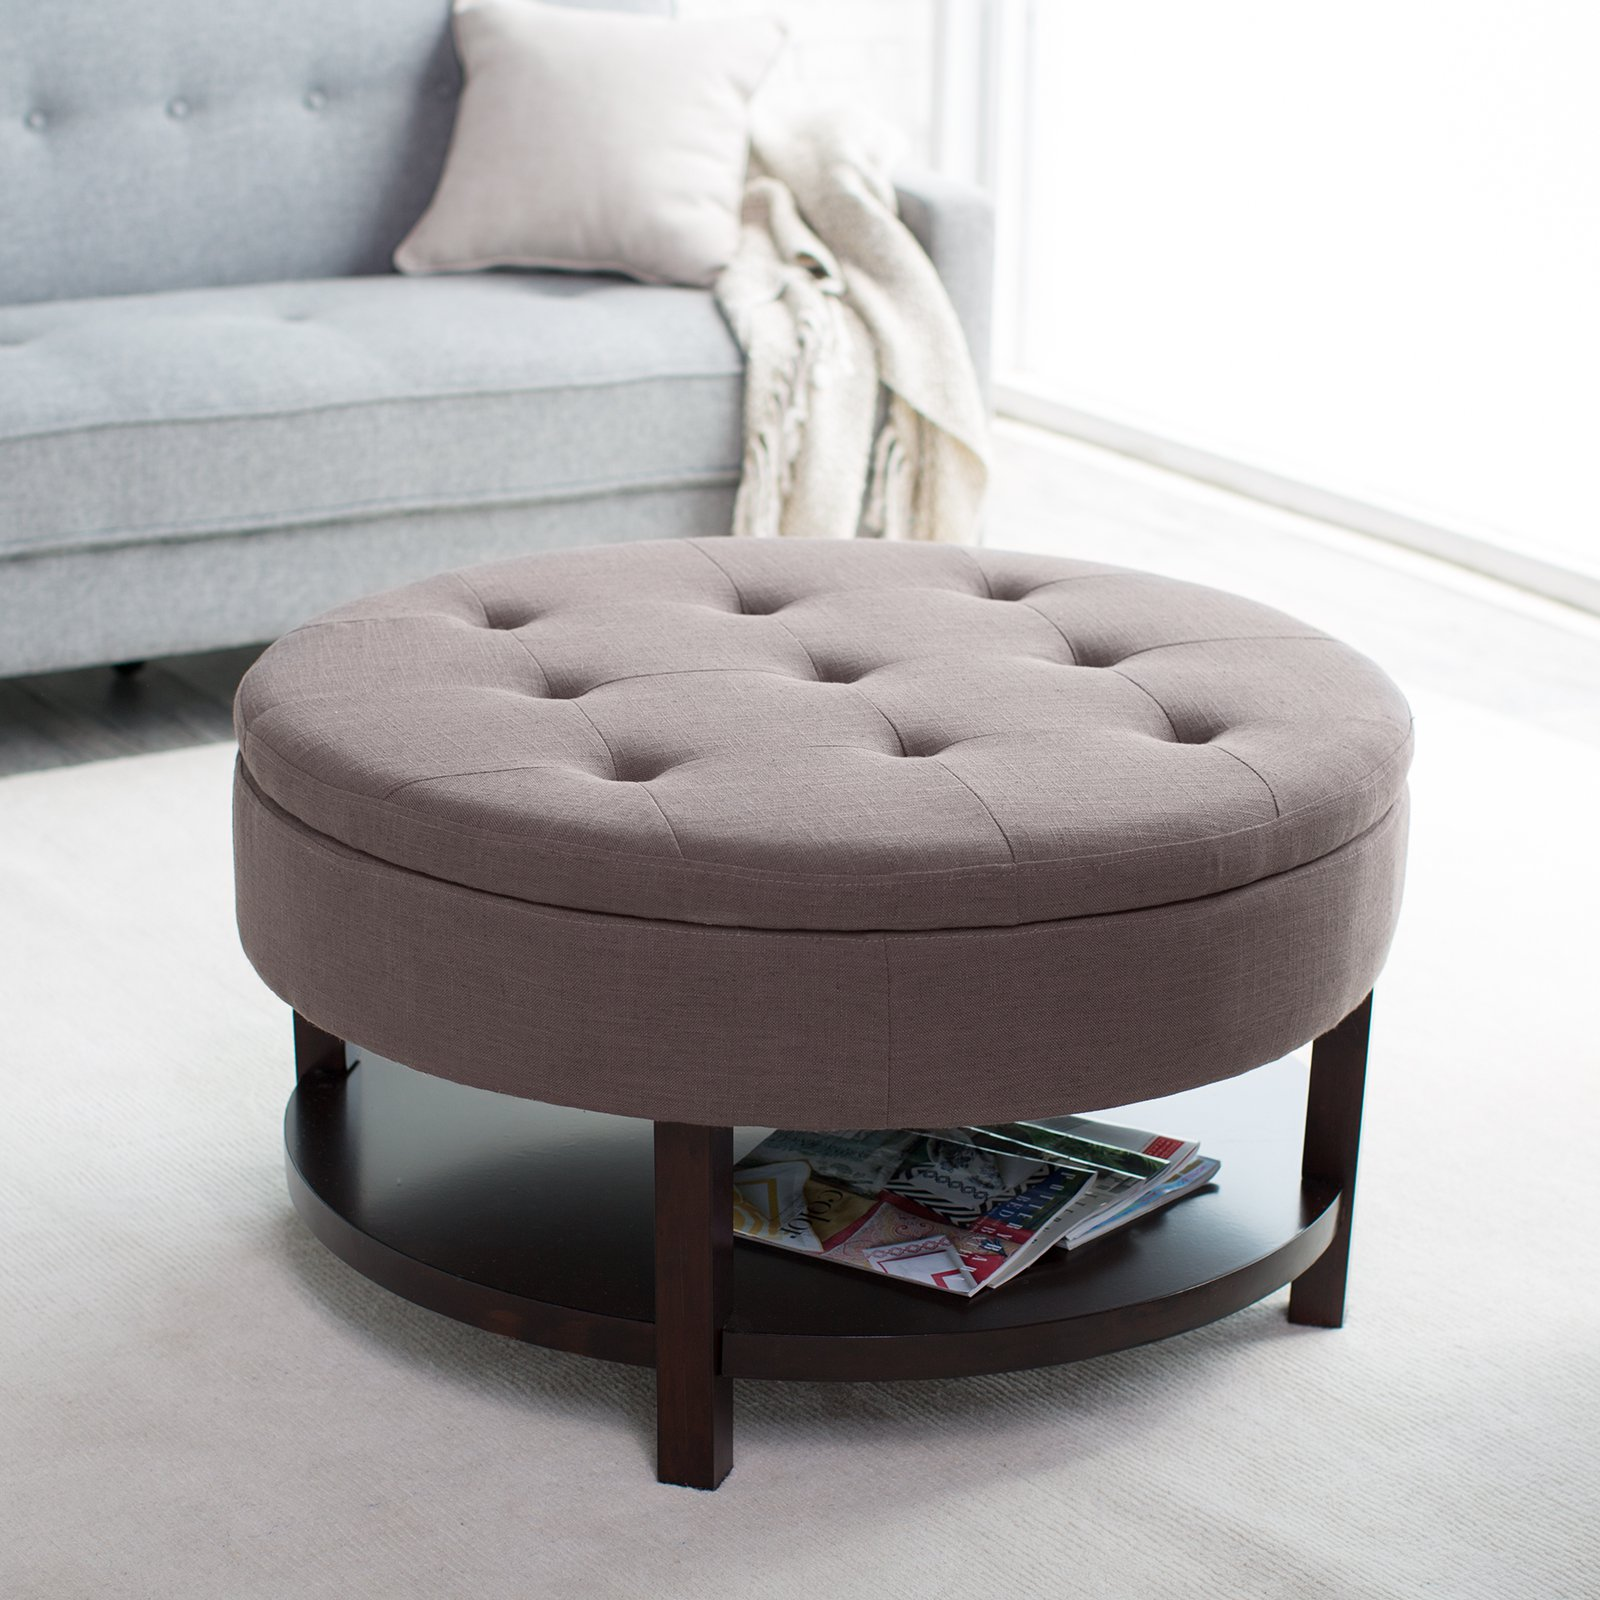 Lovely Elegant Grey Round Ottoman With Upholstered Style Suitable